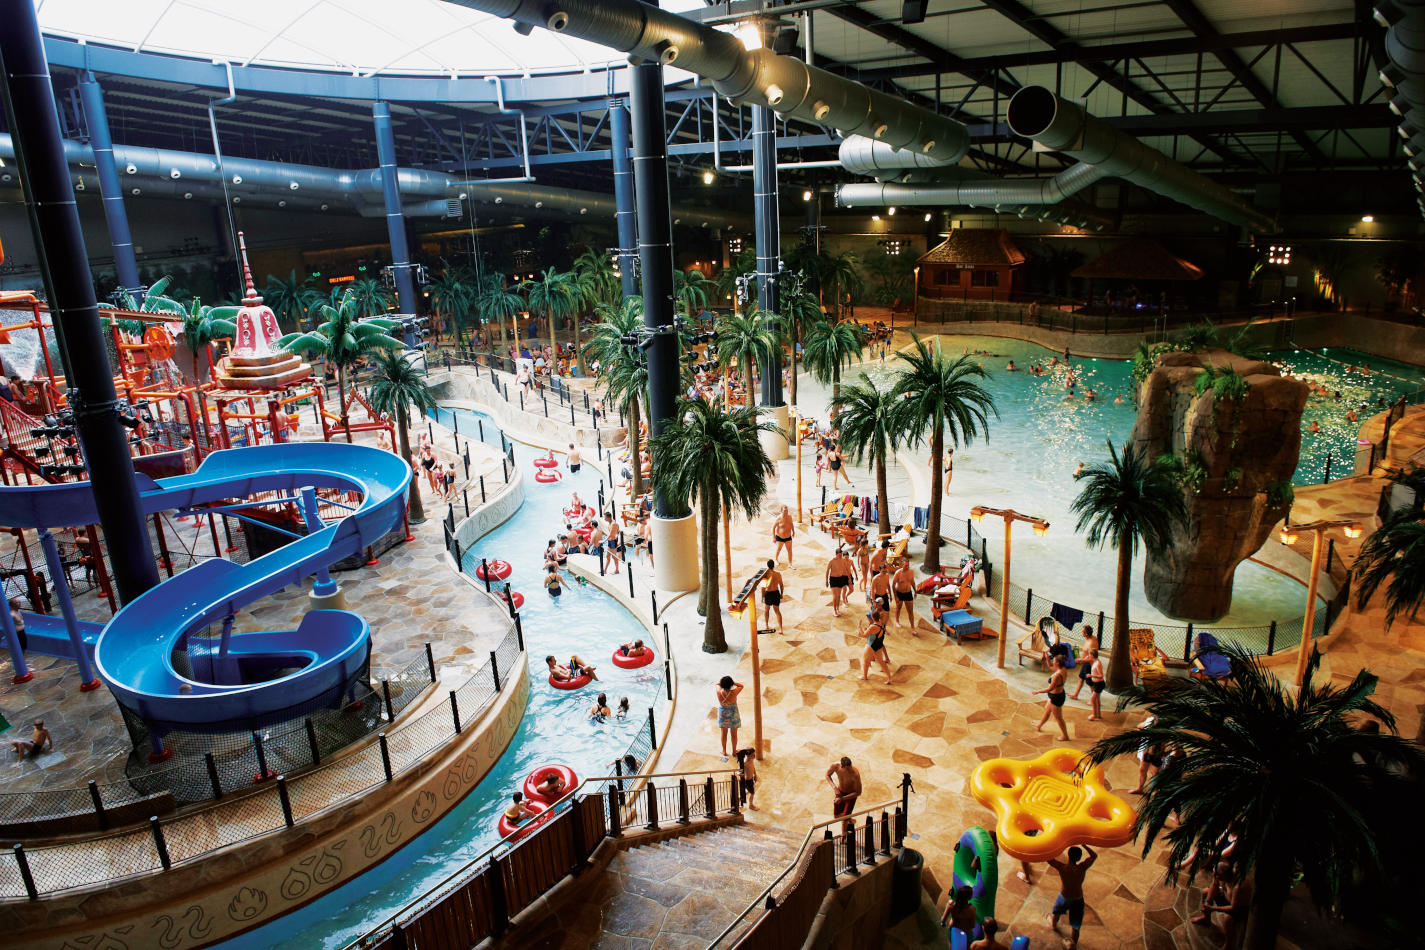 Lalandia   An all-year tropical holiday close to home   Scan Magazine